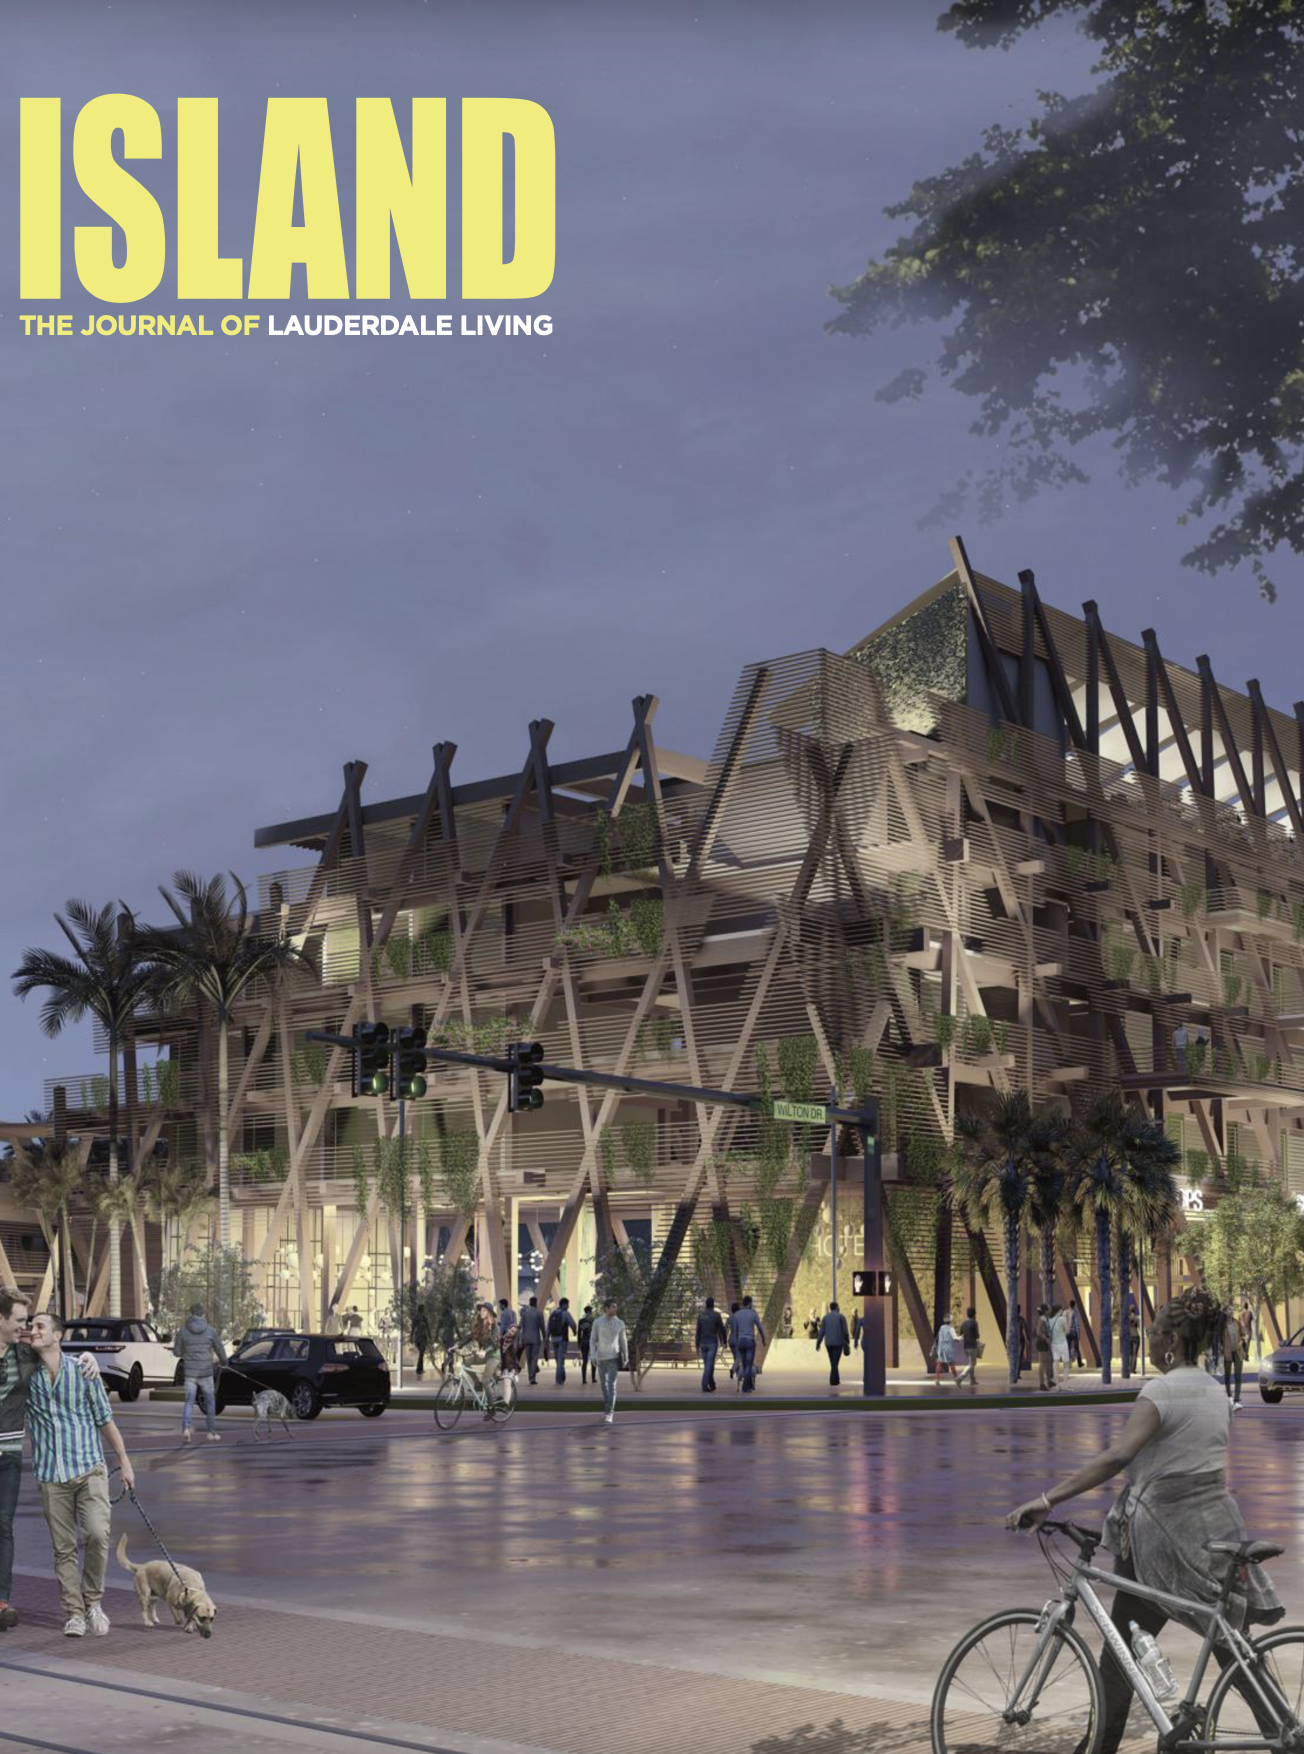 Island The Journal of Lauderdale Living